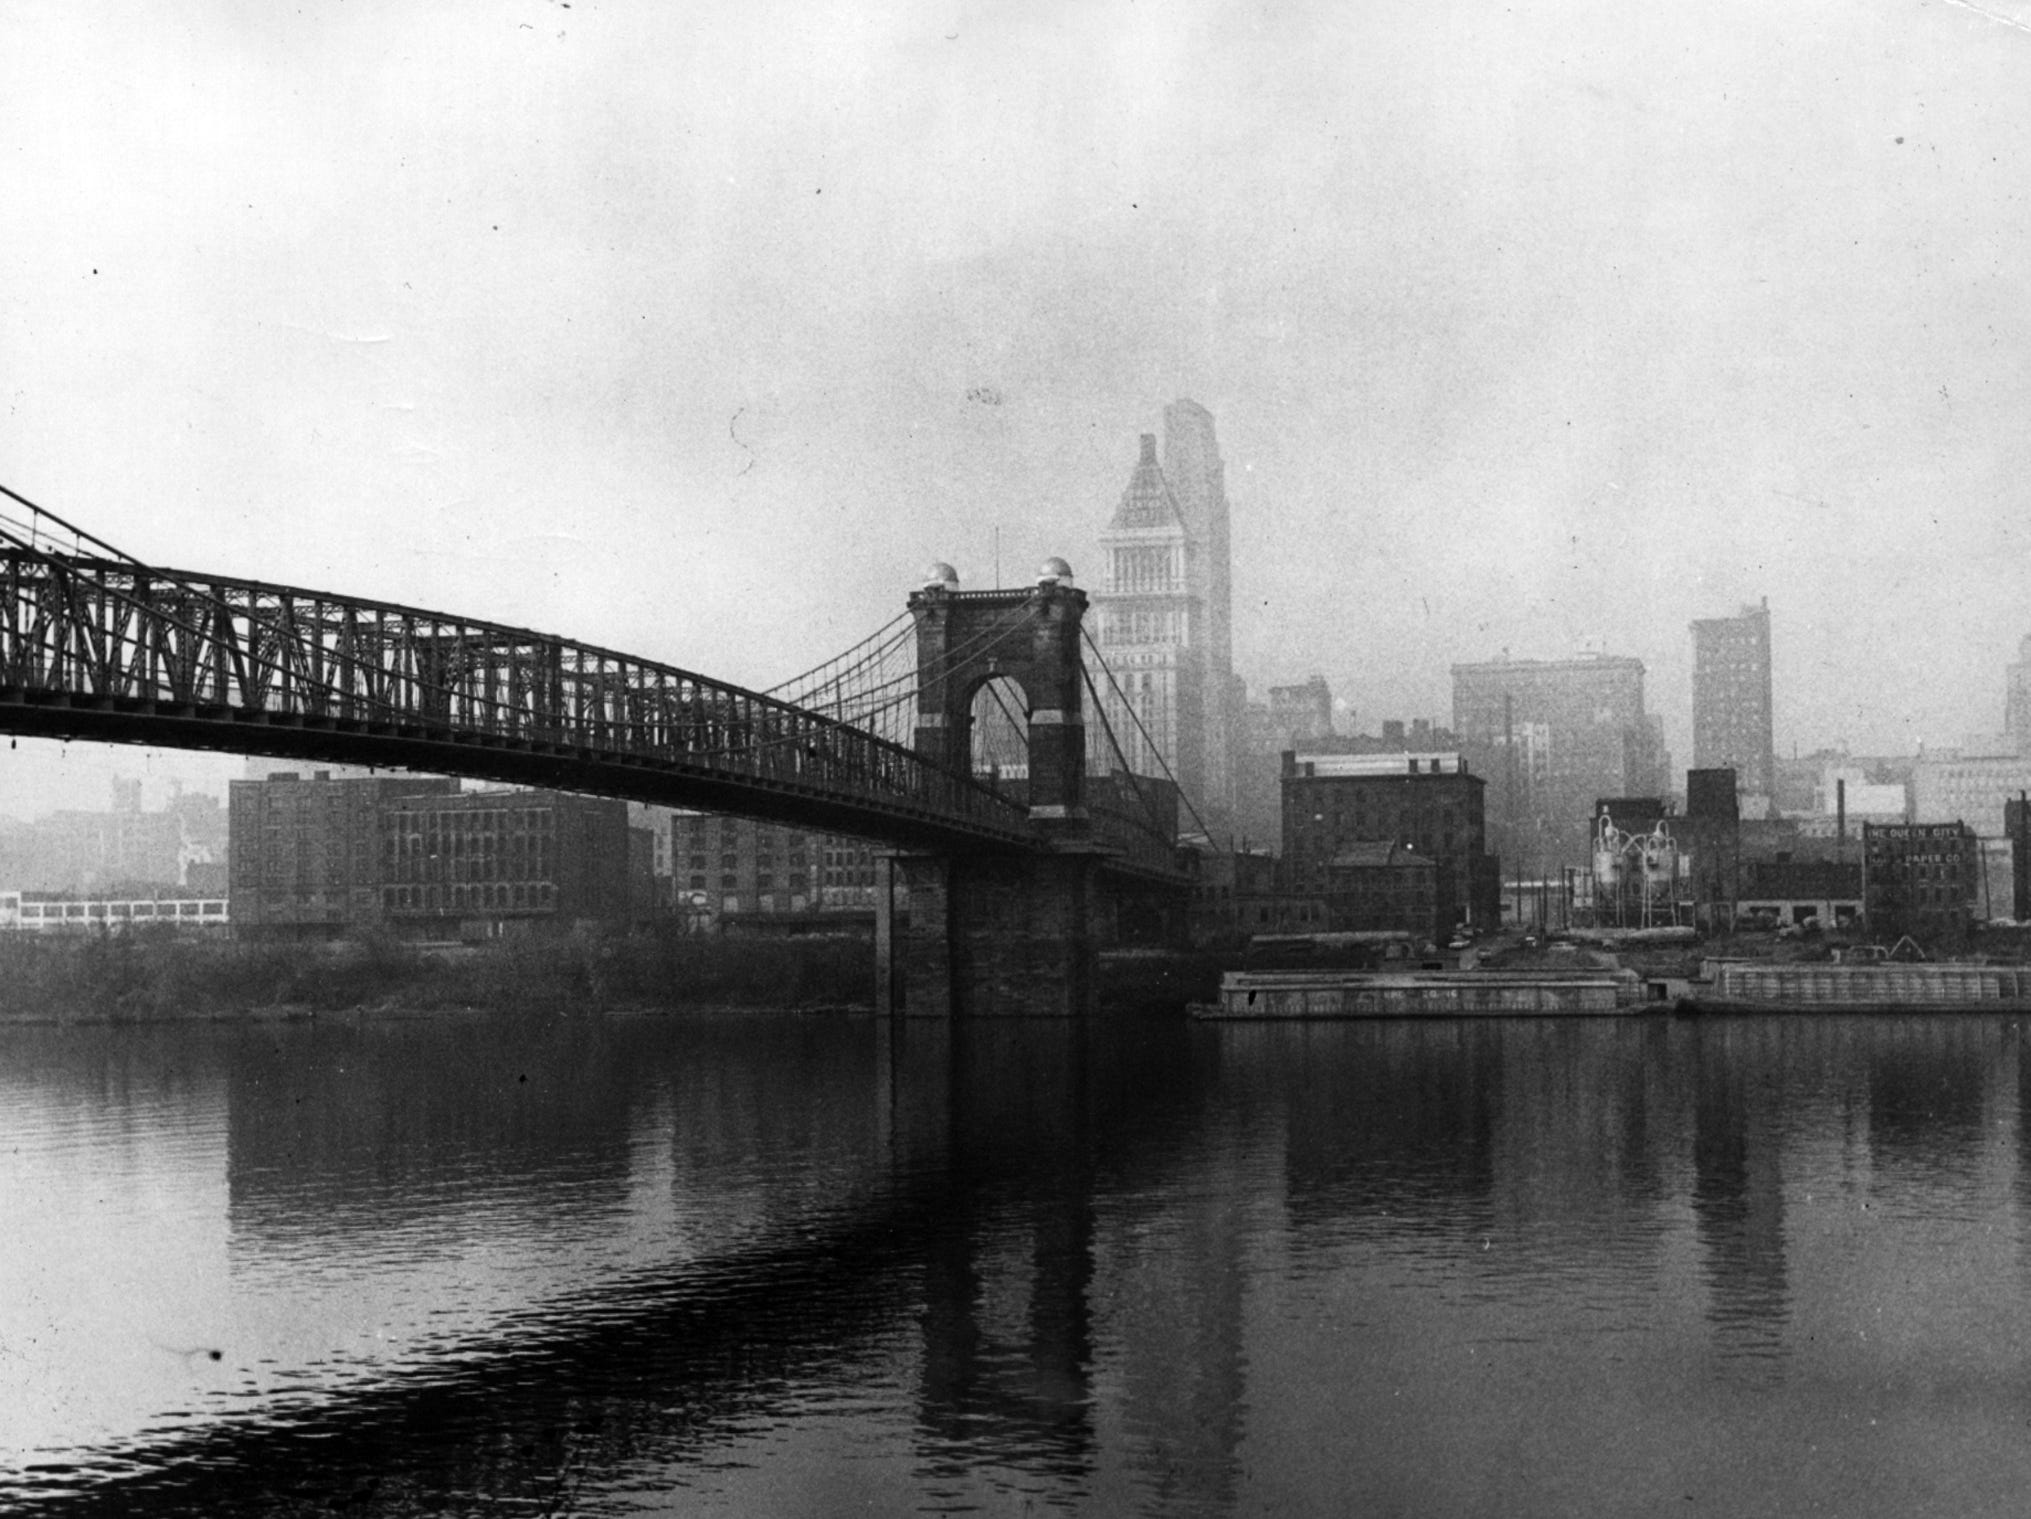 1963: John A. Roebling Suspension Bridge. From the Enquirer archives scanned May 16, 2013